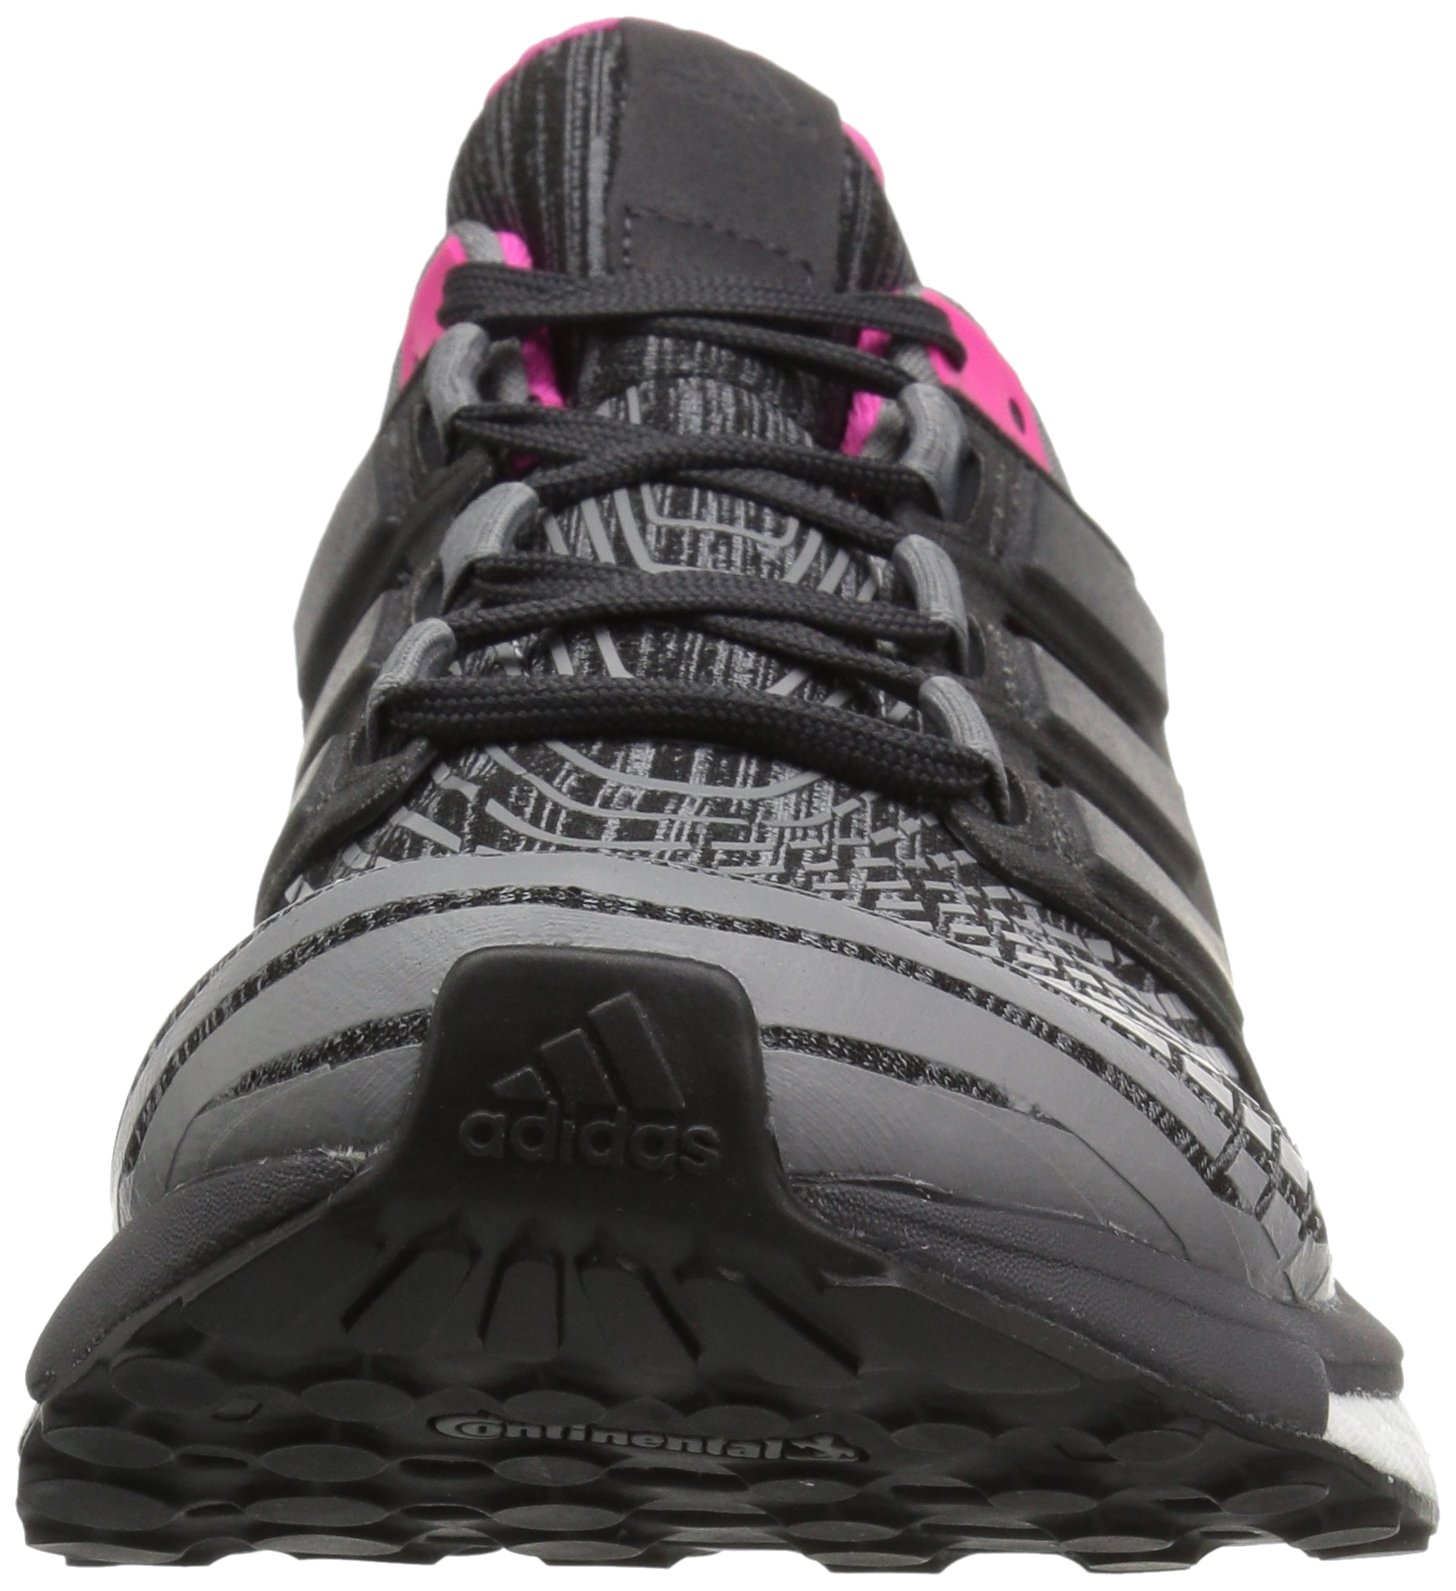 71%2BGs8FZ7OL - adidas Womens Energy Boost Fabric Low Top Lace Up Running Sneaker